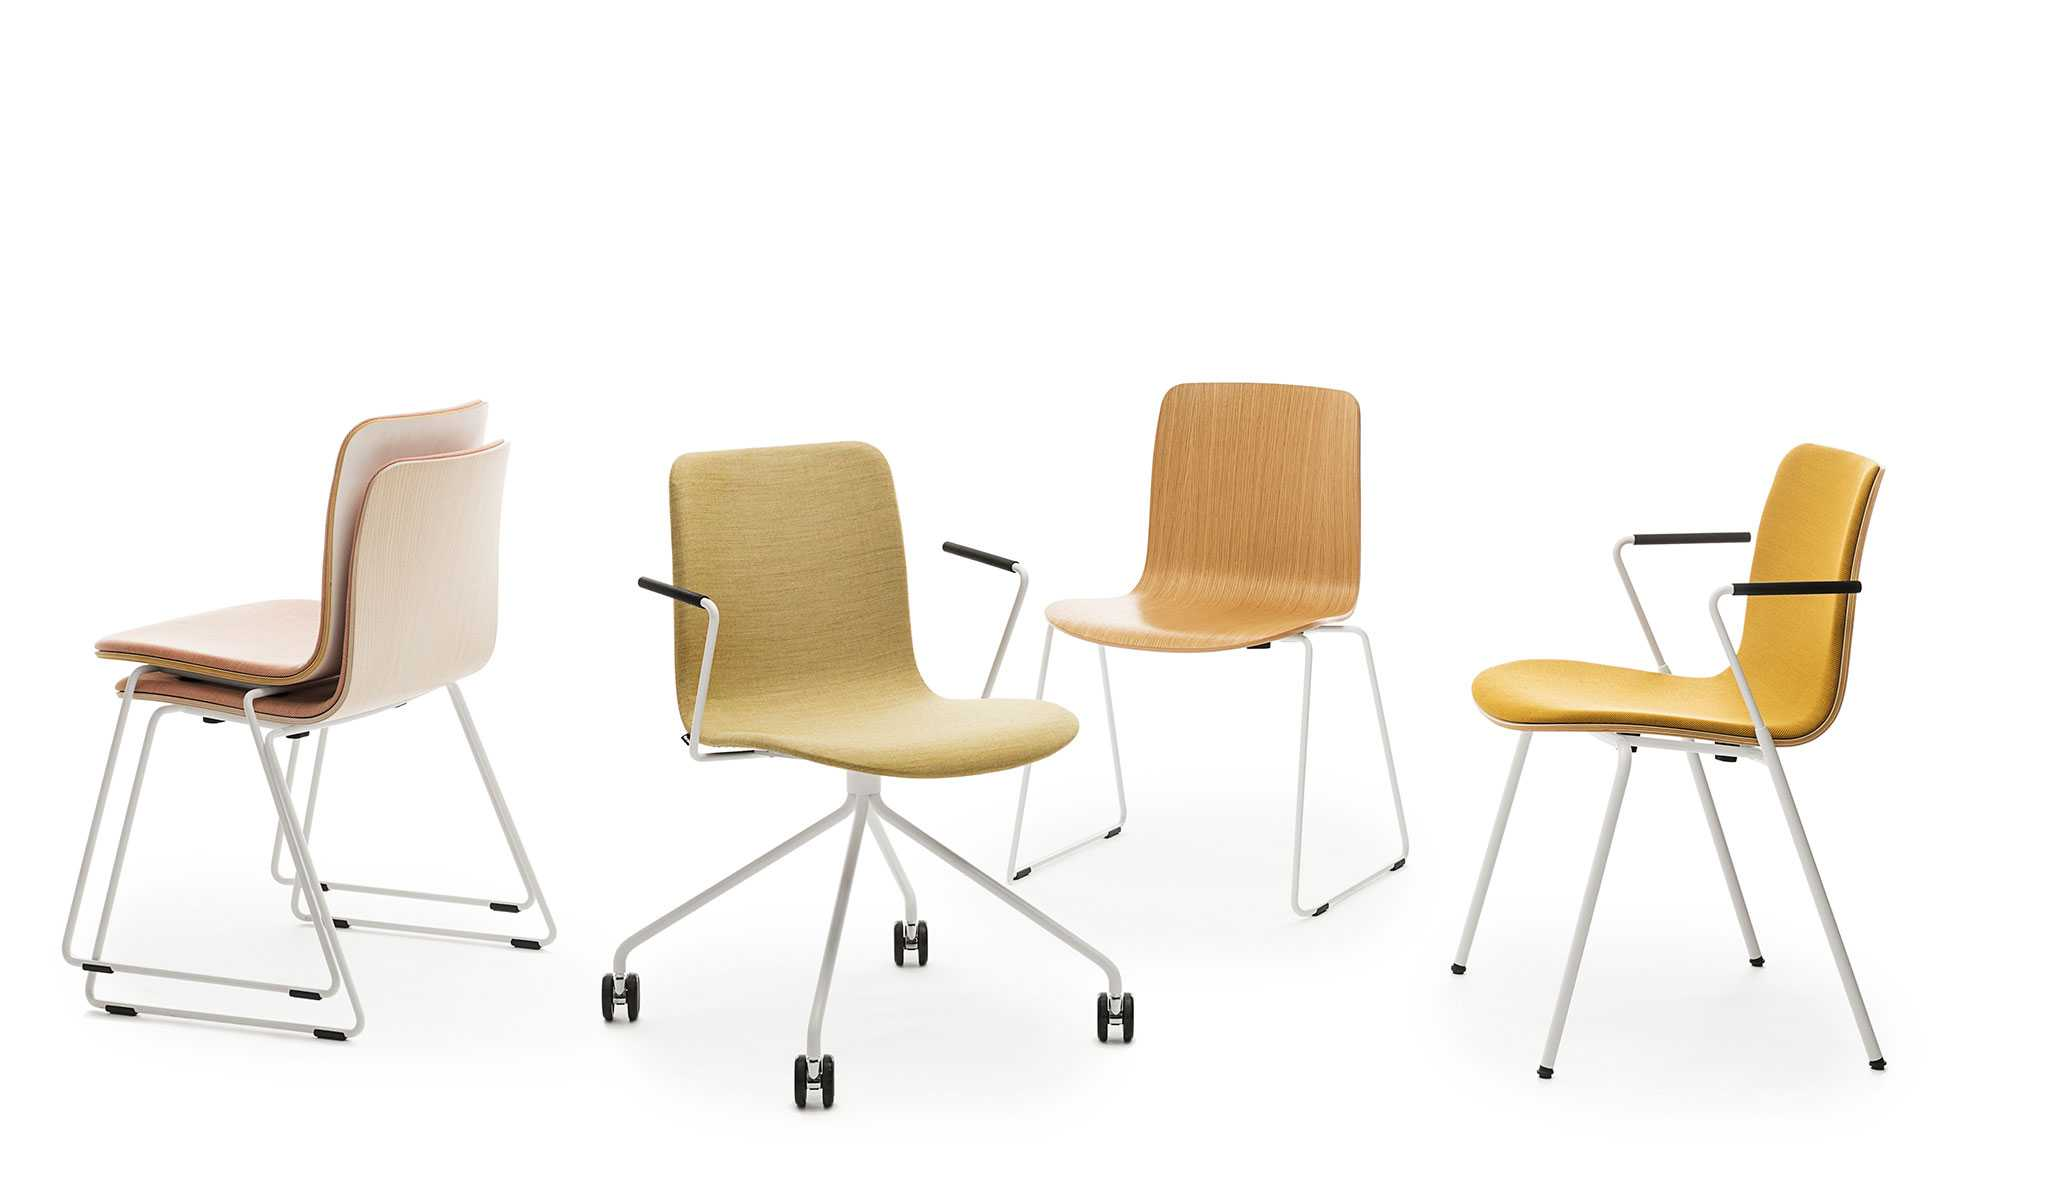 Sola family of chairs